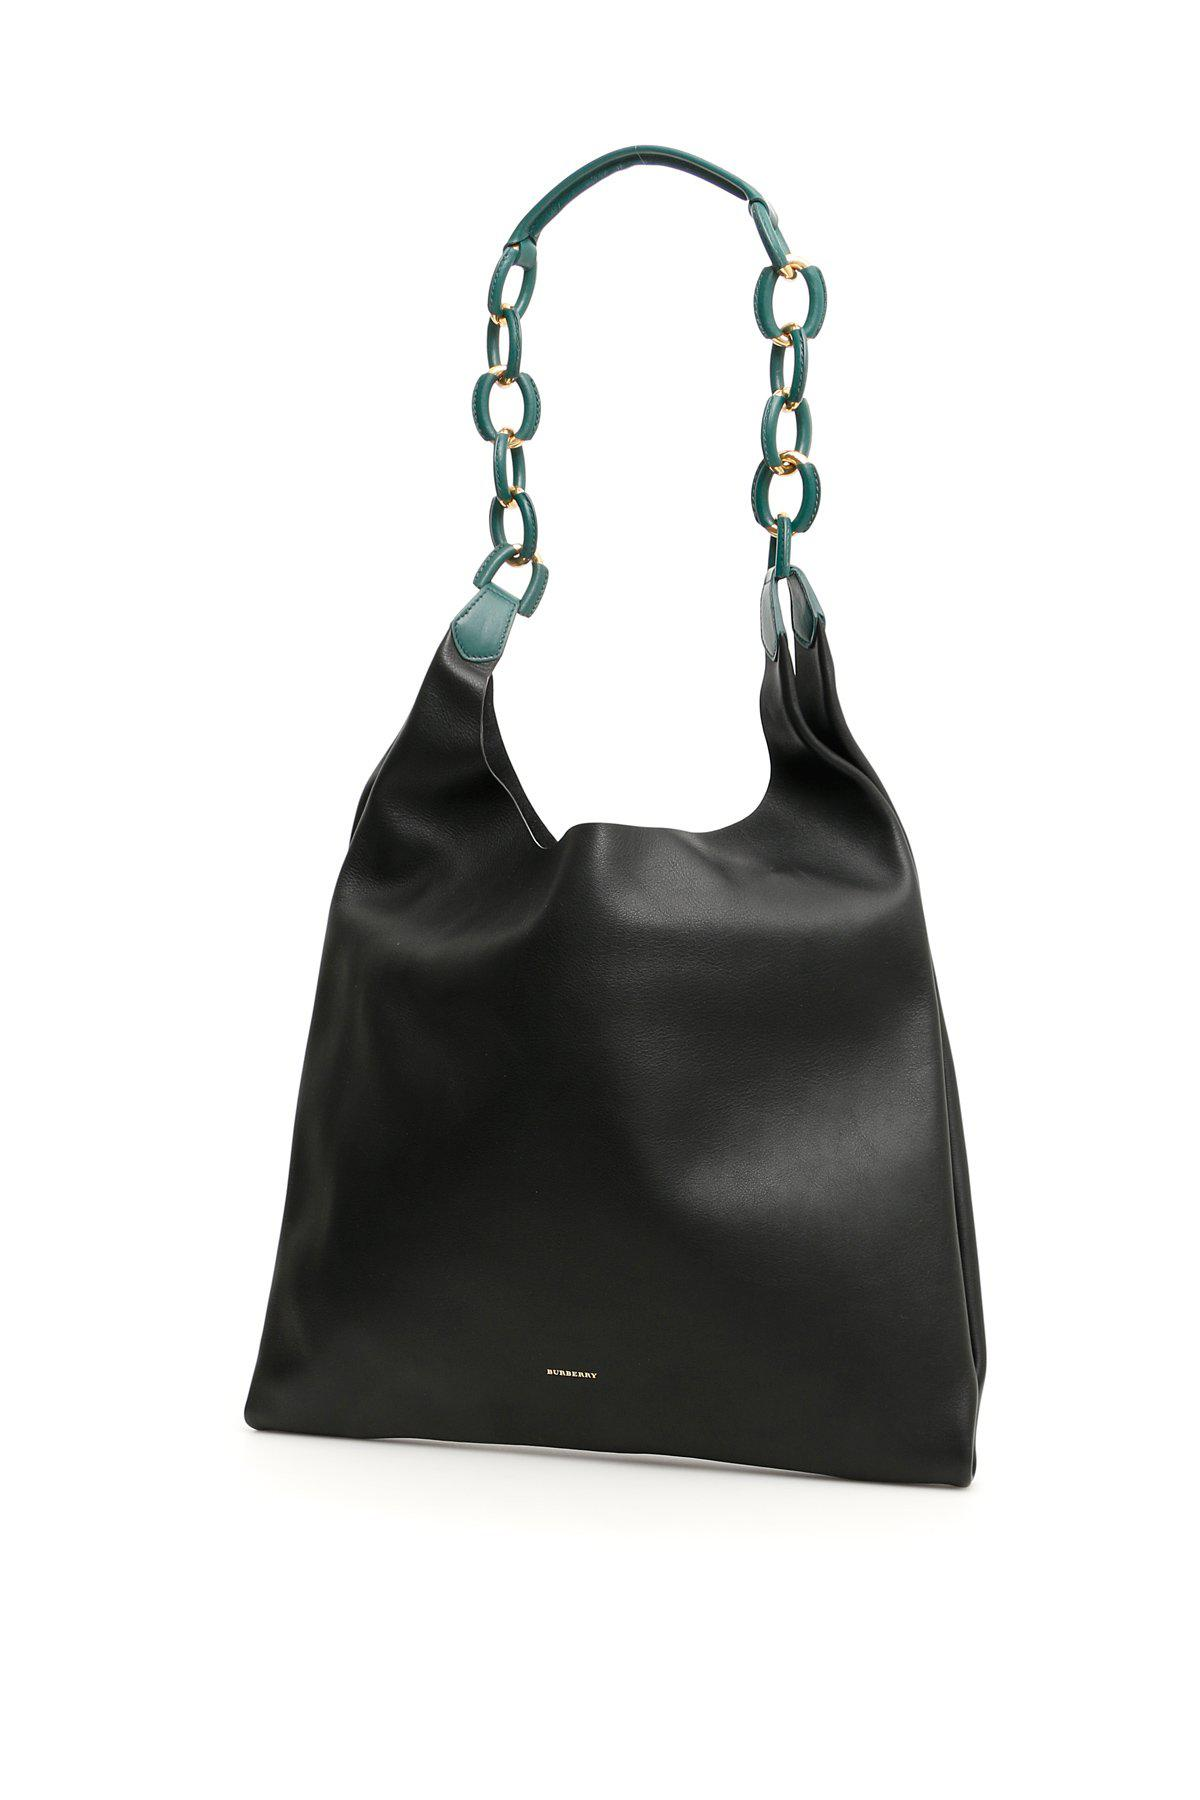 2521e06ccc62 Lyst - Burberry Medium Chain Strap Shopper in Black